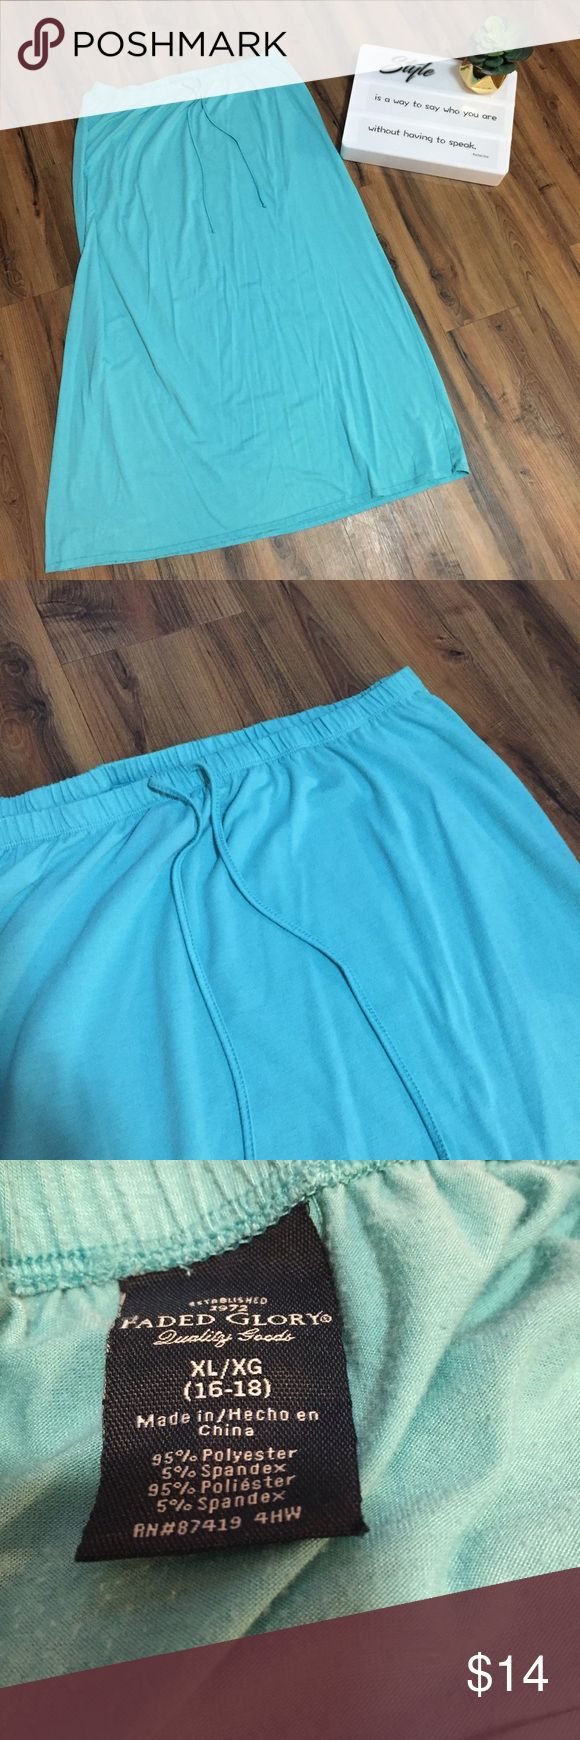 Blue Maxi Skirt - #069 Faded Glory. Size XL 16/18. Basic blue/turquoise maxi skirt. Full length. The elastic waistband measures approximately 16 inches when laid flat. The full length of the skirt is approximately 37 inches.  Listed 11-7-17 Faded Glory Skirts Maxi